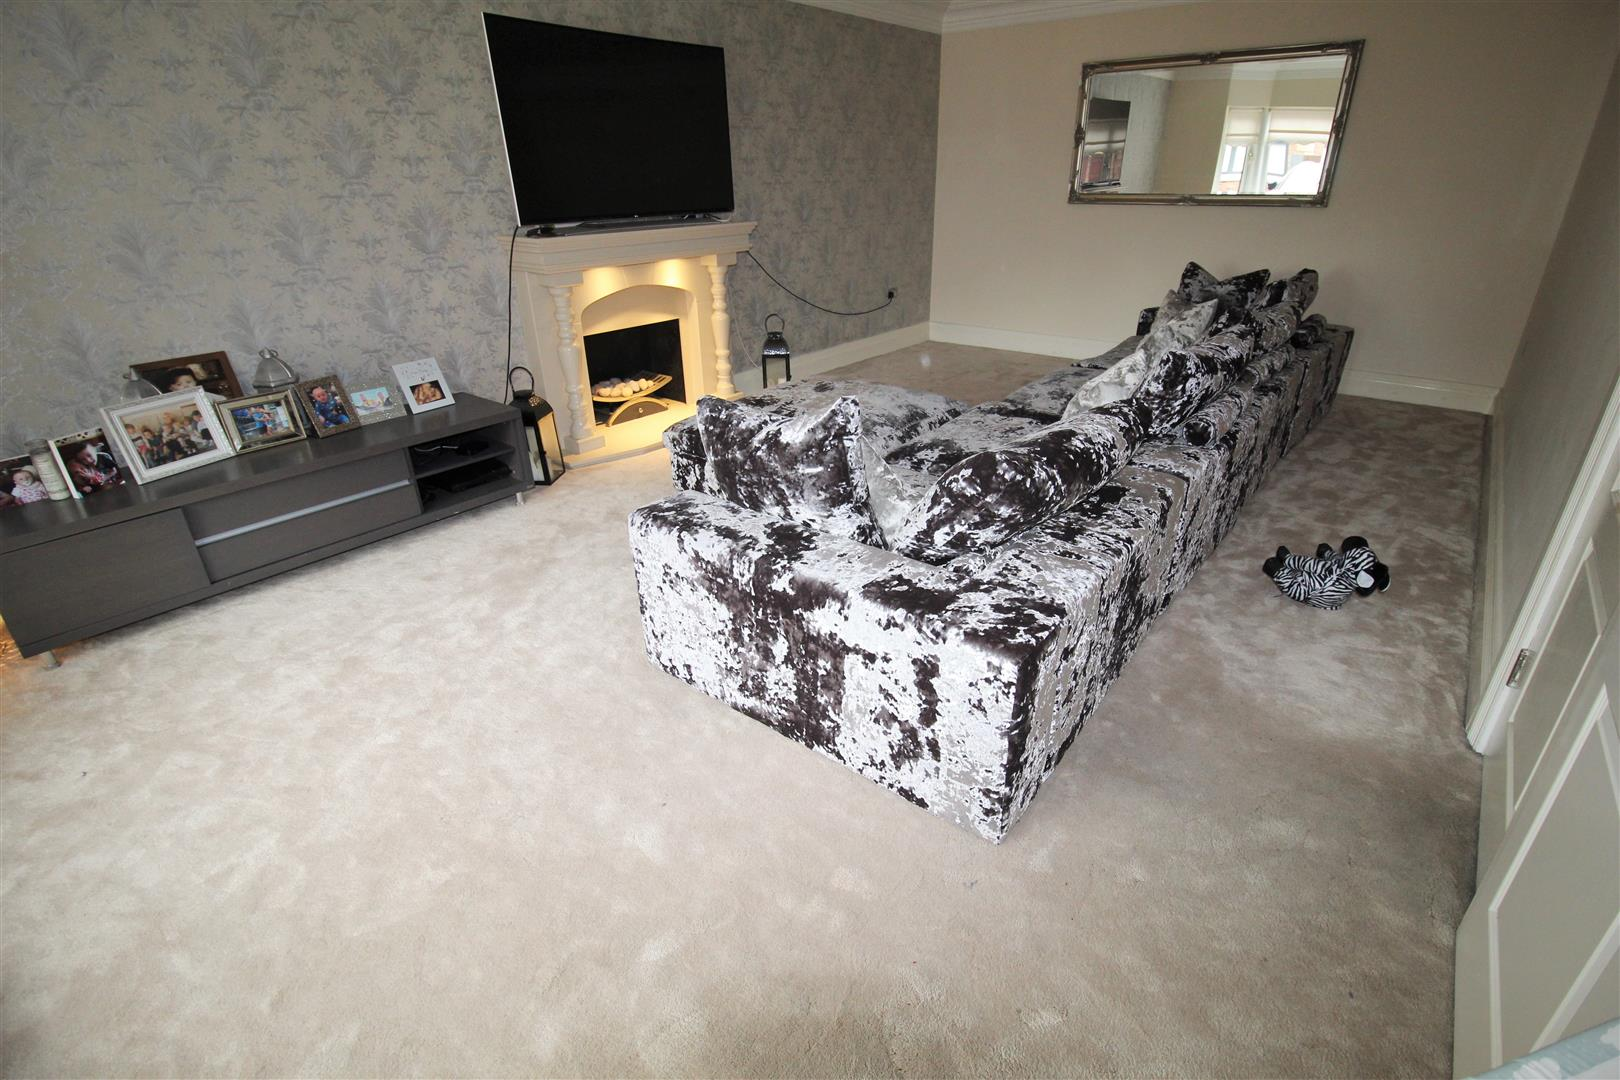 6 Bedrooms, House - Detached, The Pottery, Melling, Liverpool